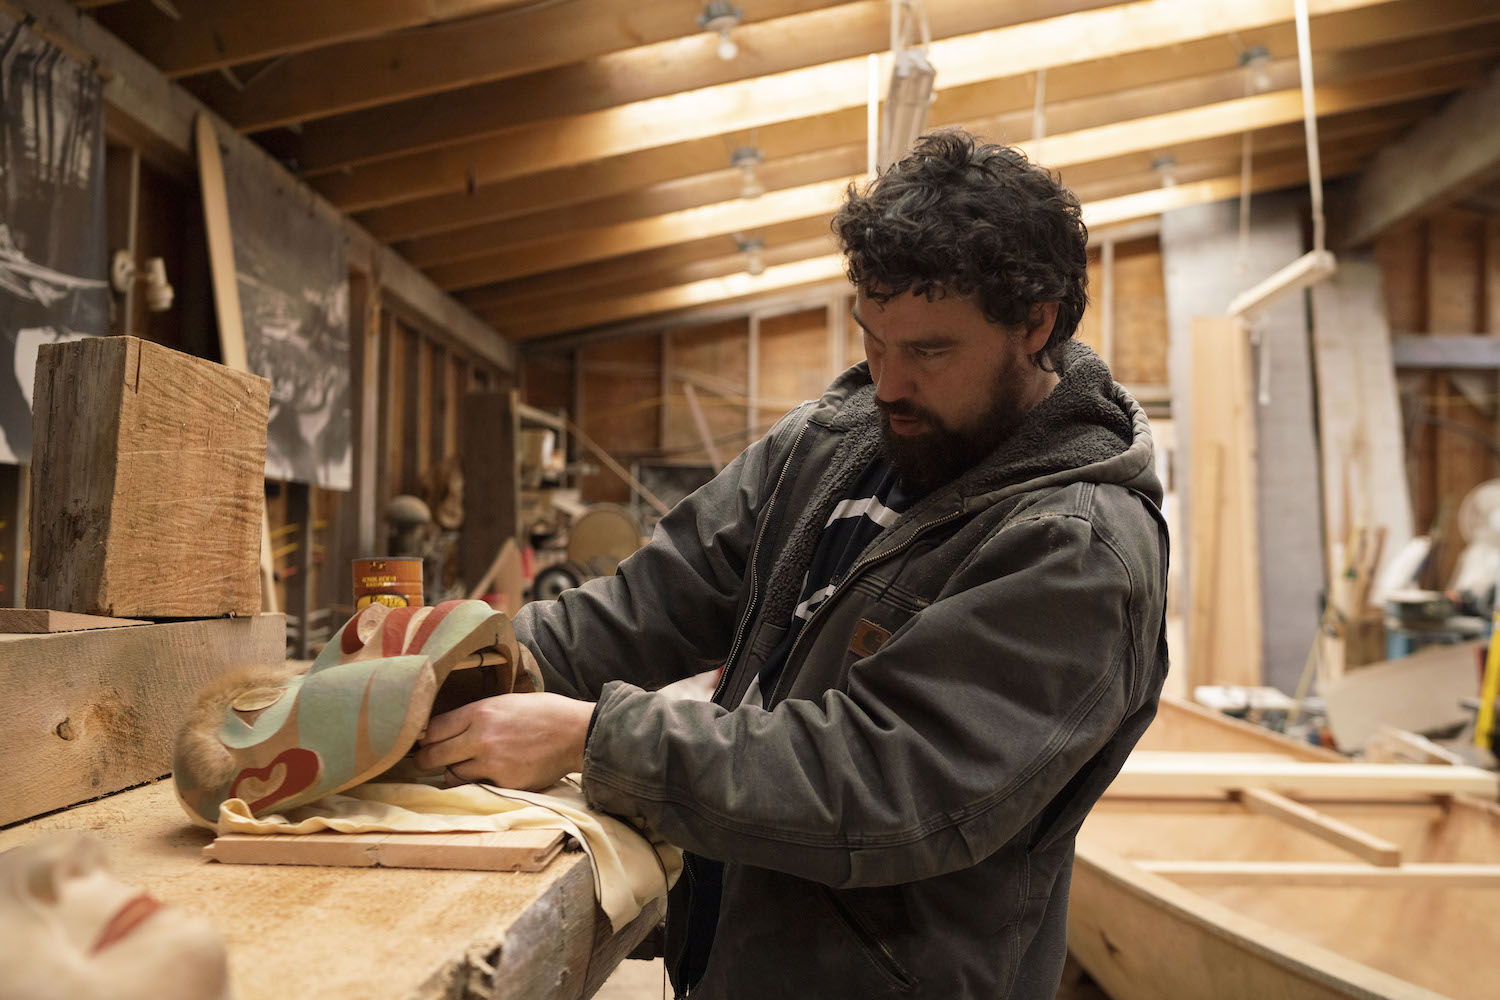 2021 Fulmer Award in First Nations Art recipients to be named